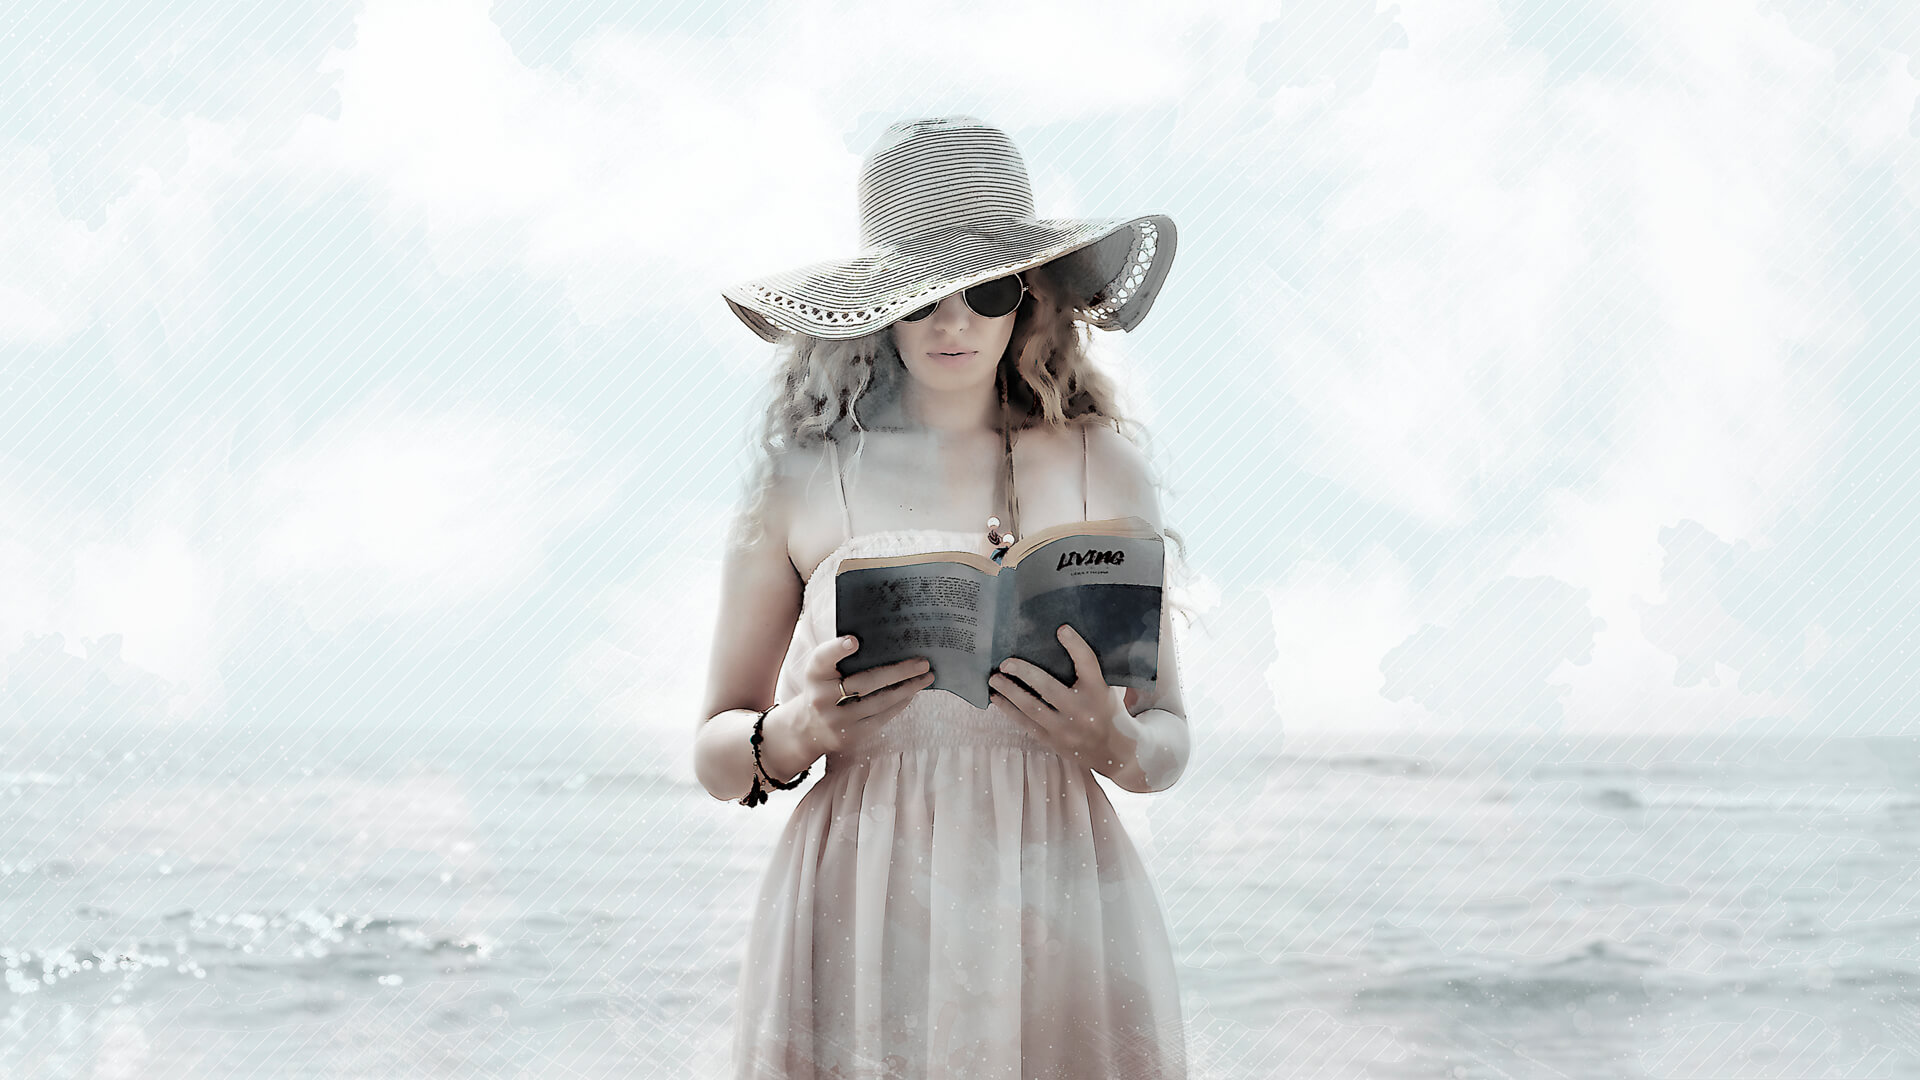 Beach Reading Woman in Watercolor Style